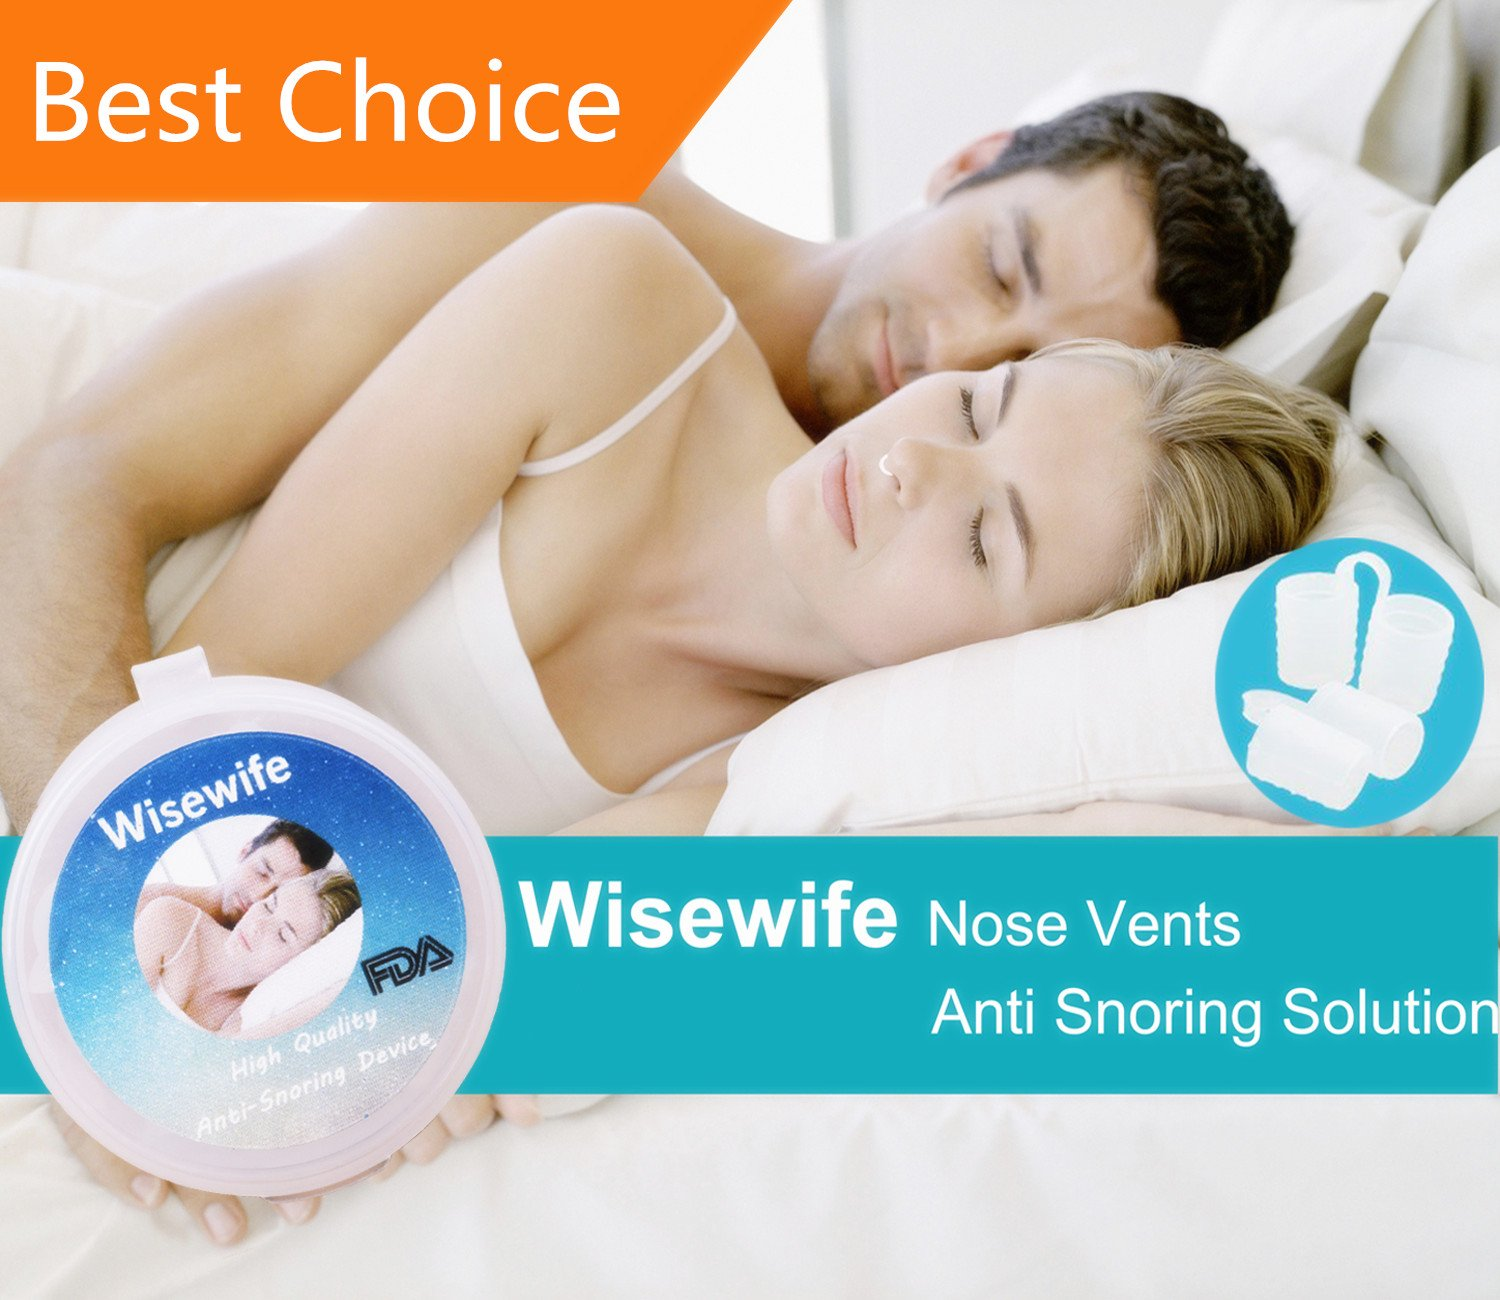 Anti Snoring Nose Vents - Set of 4 - Snore reliver for Men and Women - Ease Breathing and snoring - Includes A Travel Case by Wisewife